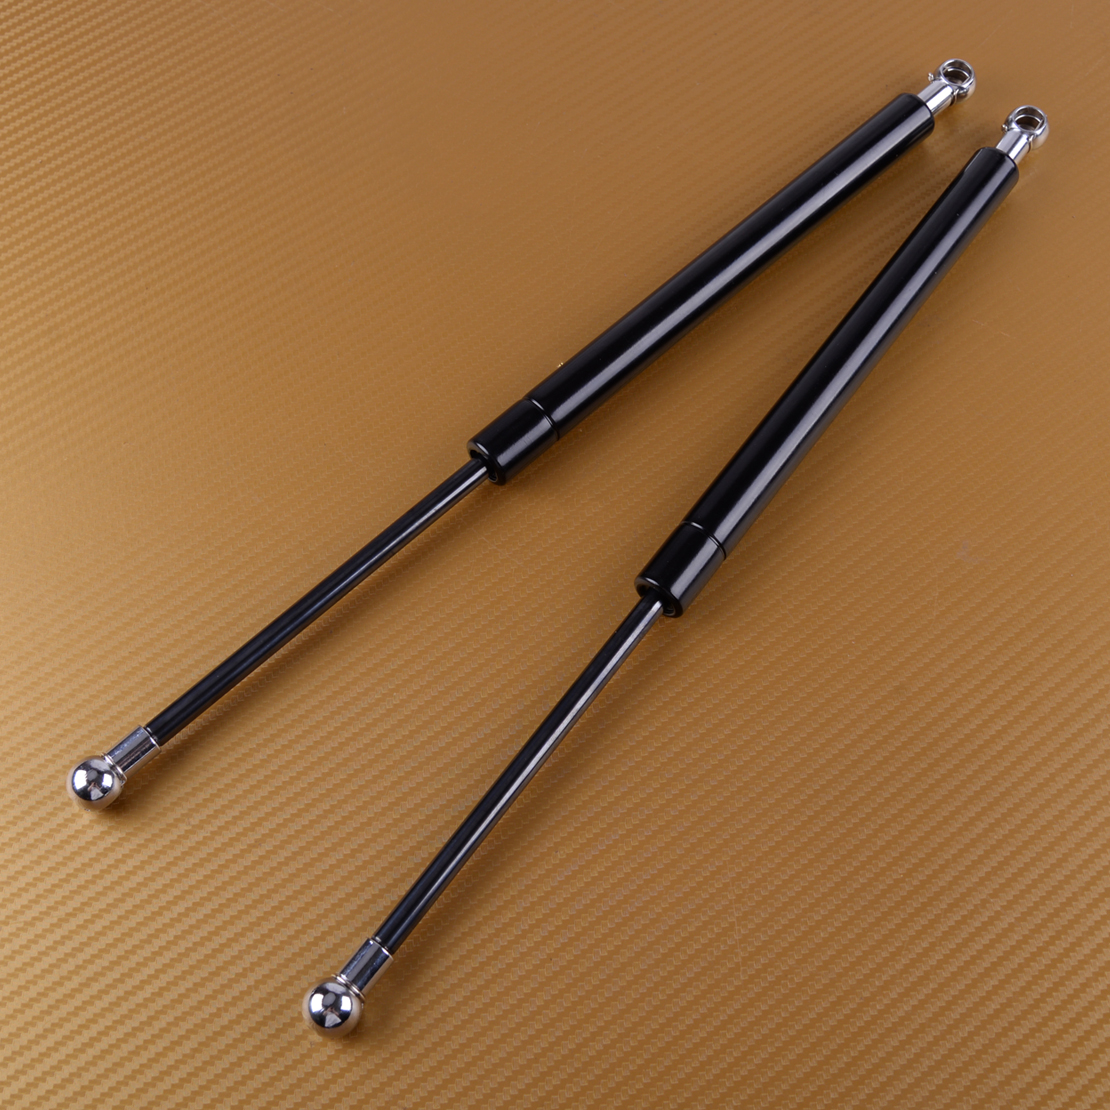 Hood Gas Charged Lift Supports Shock Struts Prop Rods Fit For Honda Civic 8th